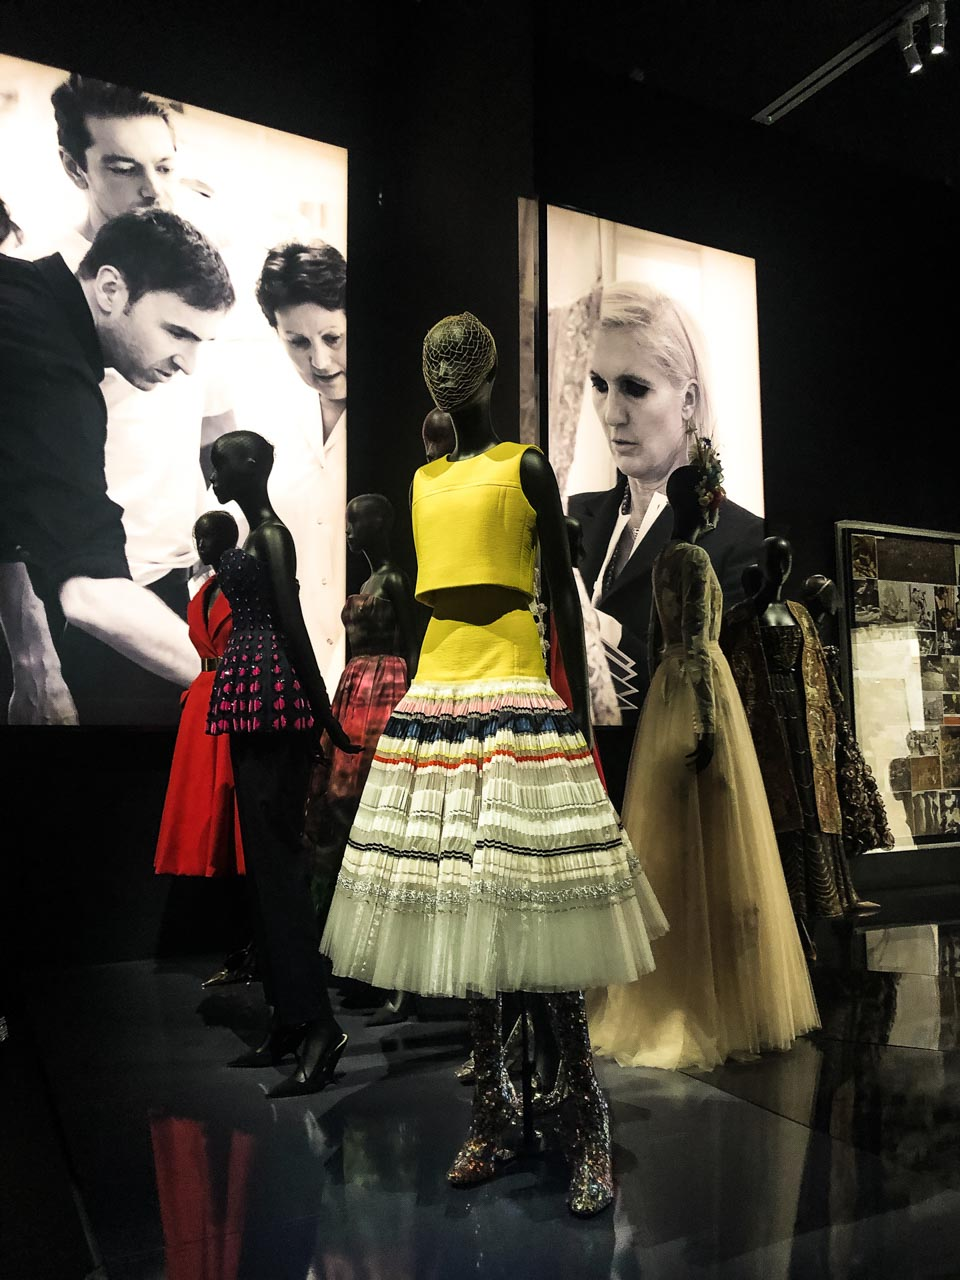 Creations of Raf Simons for Dior at the Victoria and Albert Museum in London